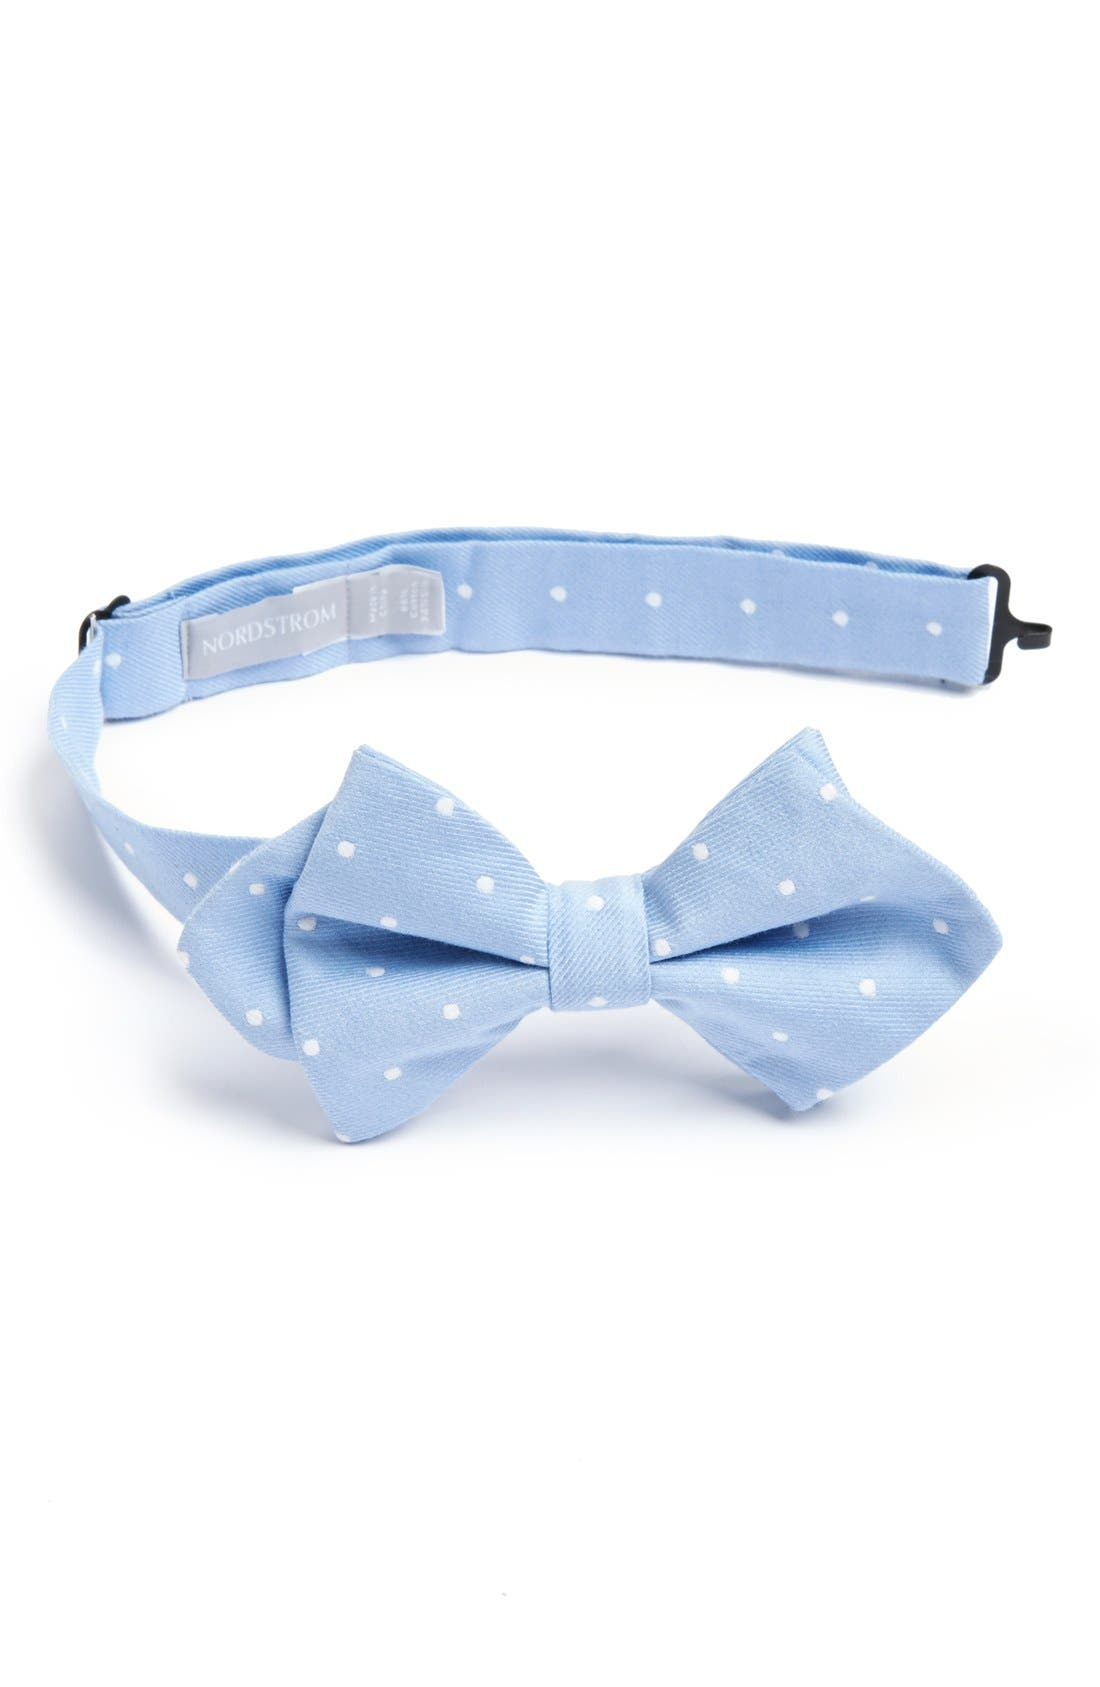 Main Image - Nordstrom Cotton & Silk Bow Tie (Big Boys)